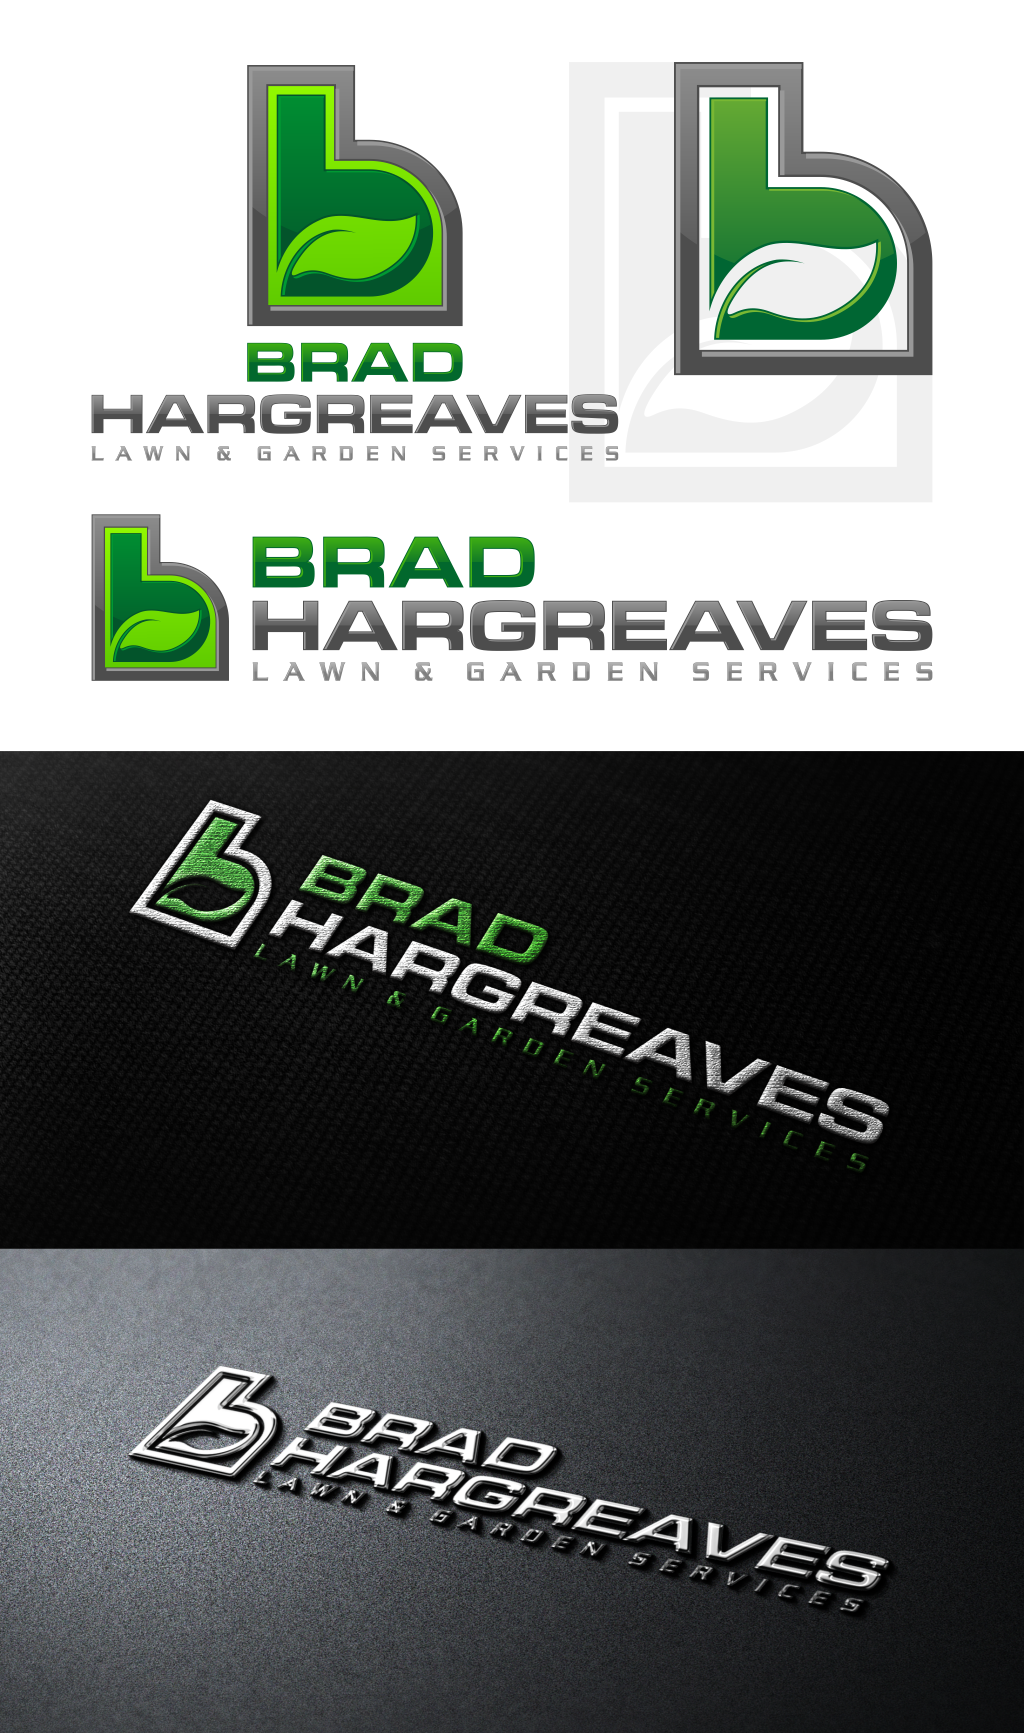 Brad Hargreaves Lawn & Garden Sevices needs a new logo